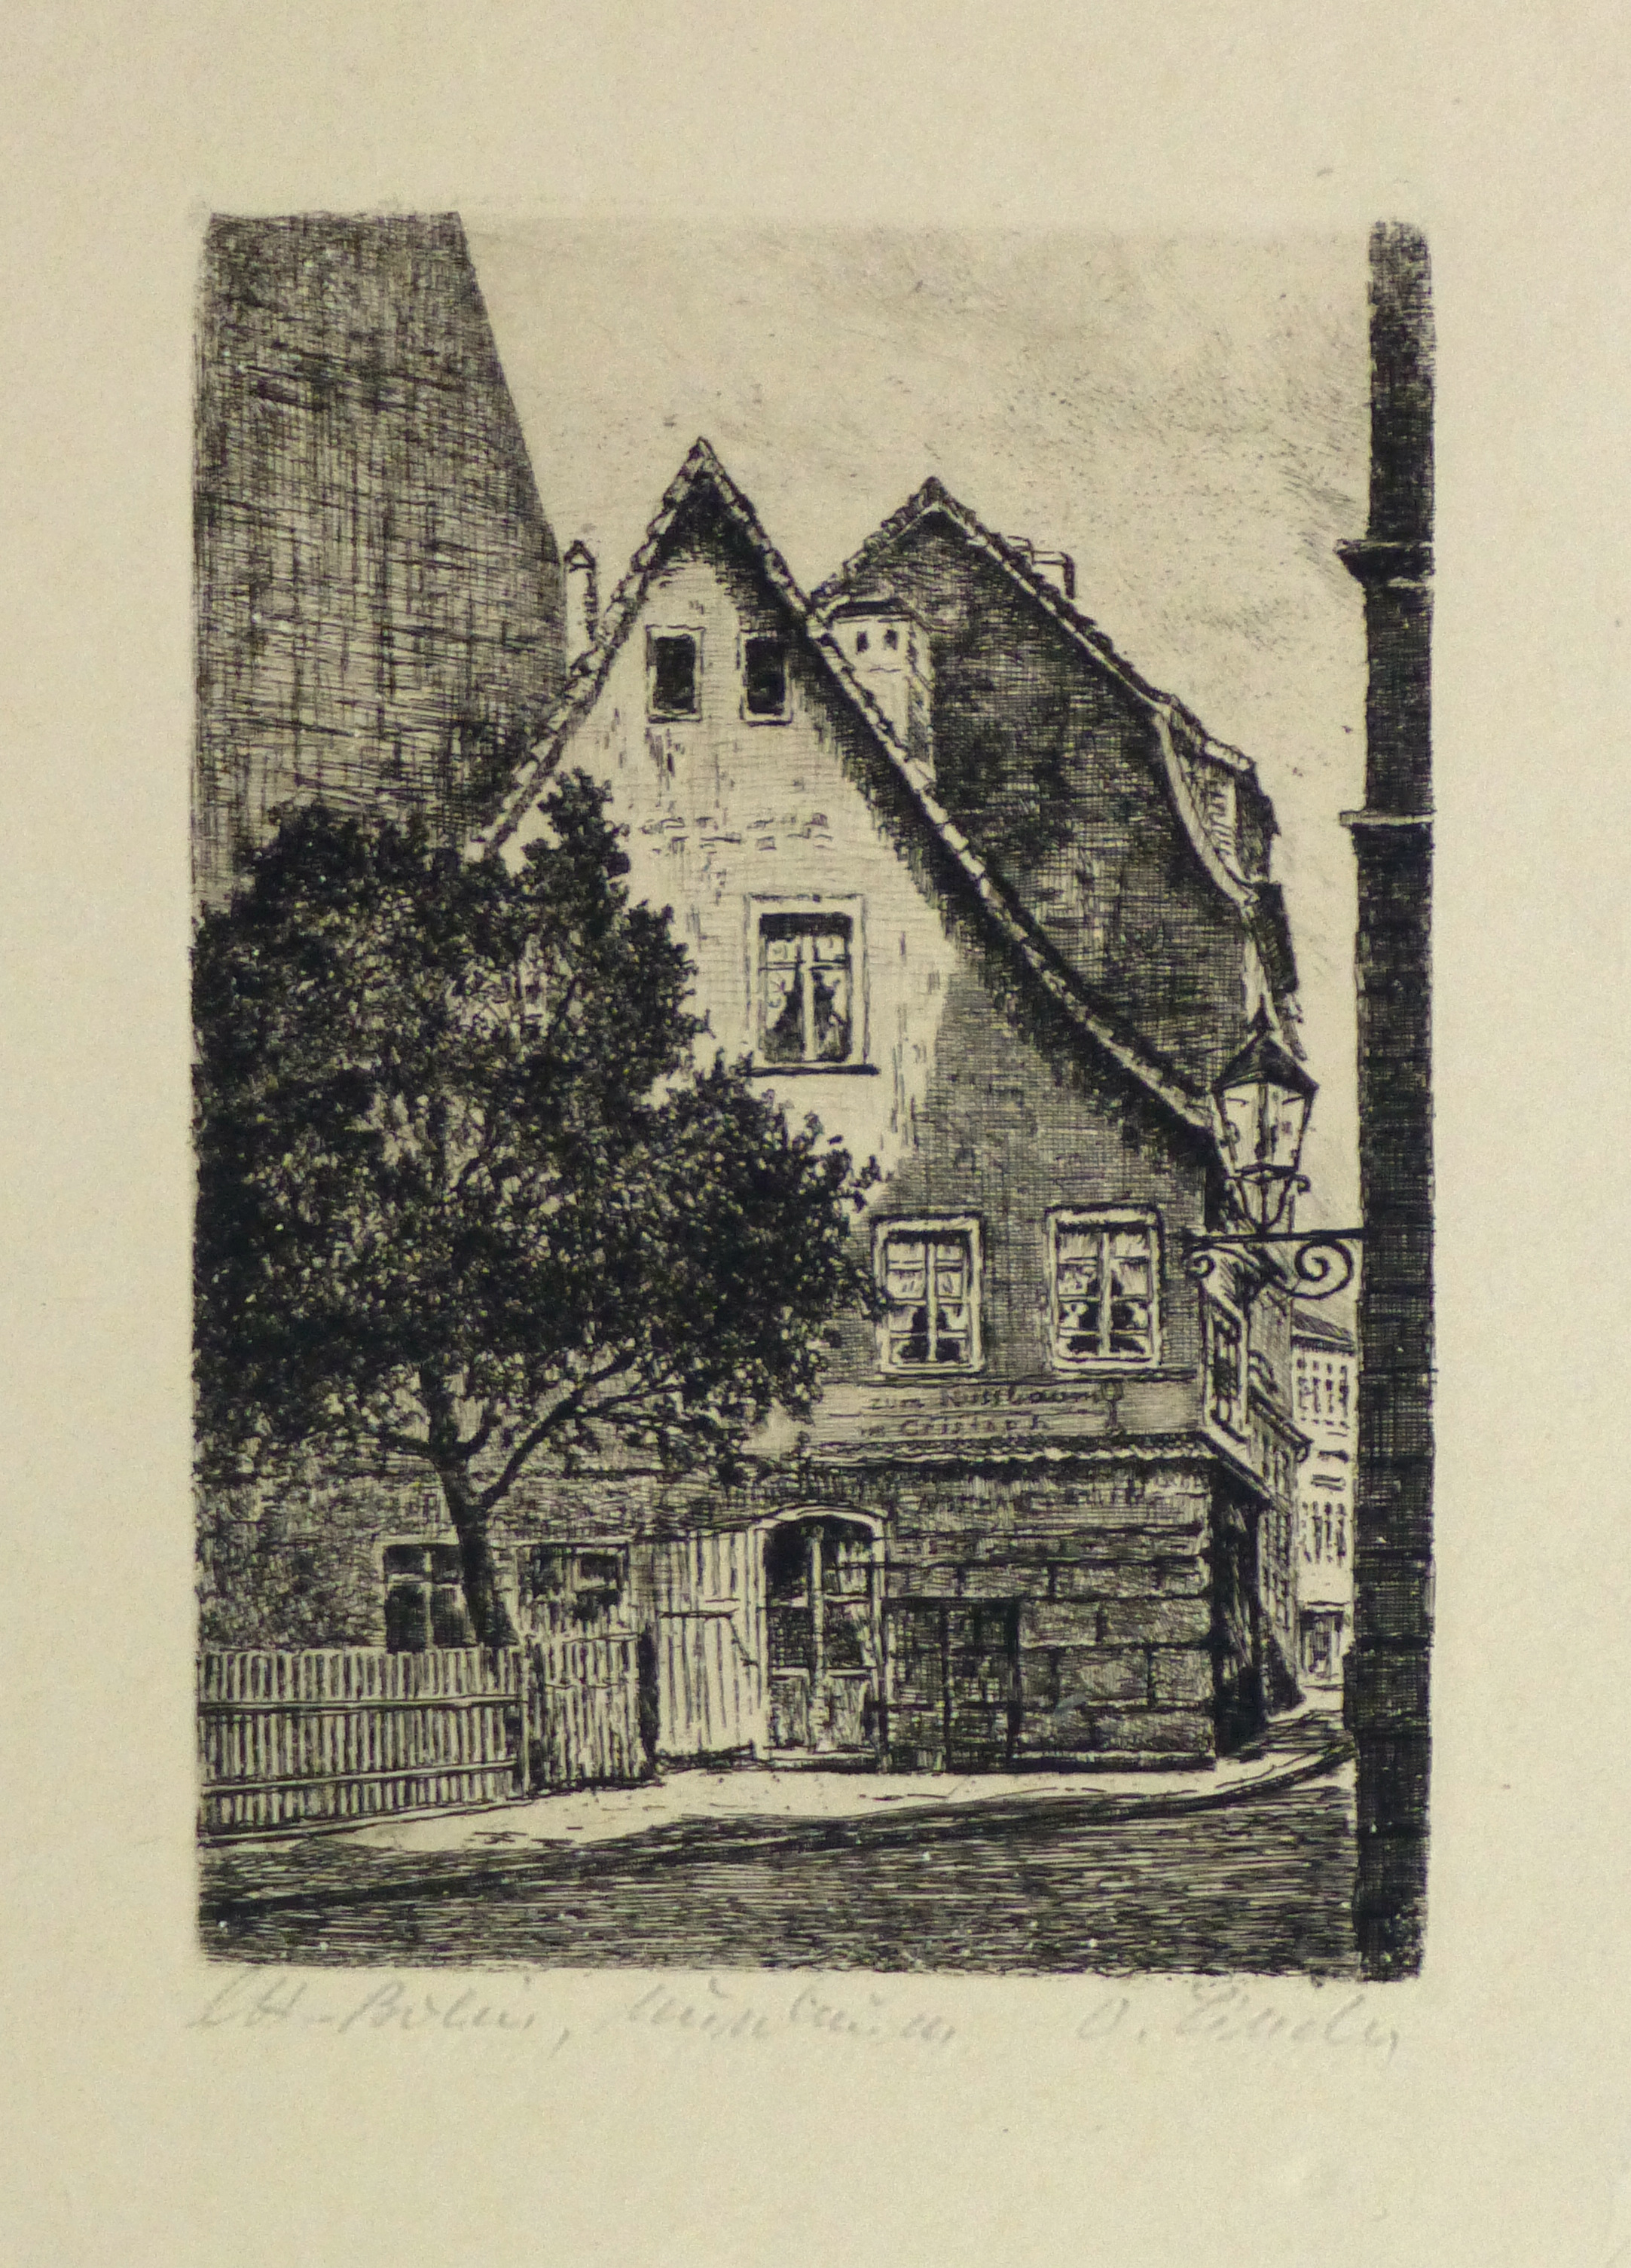 Etching - The Corner Pub, Circa 1930-main-10752M